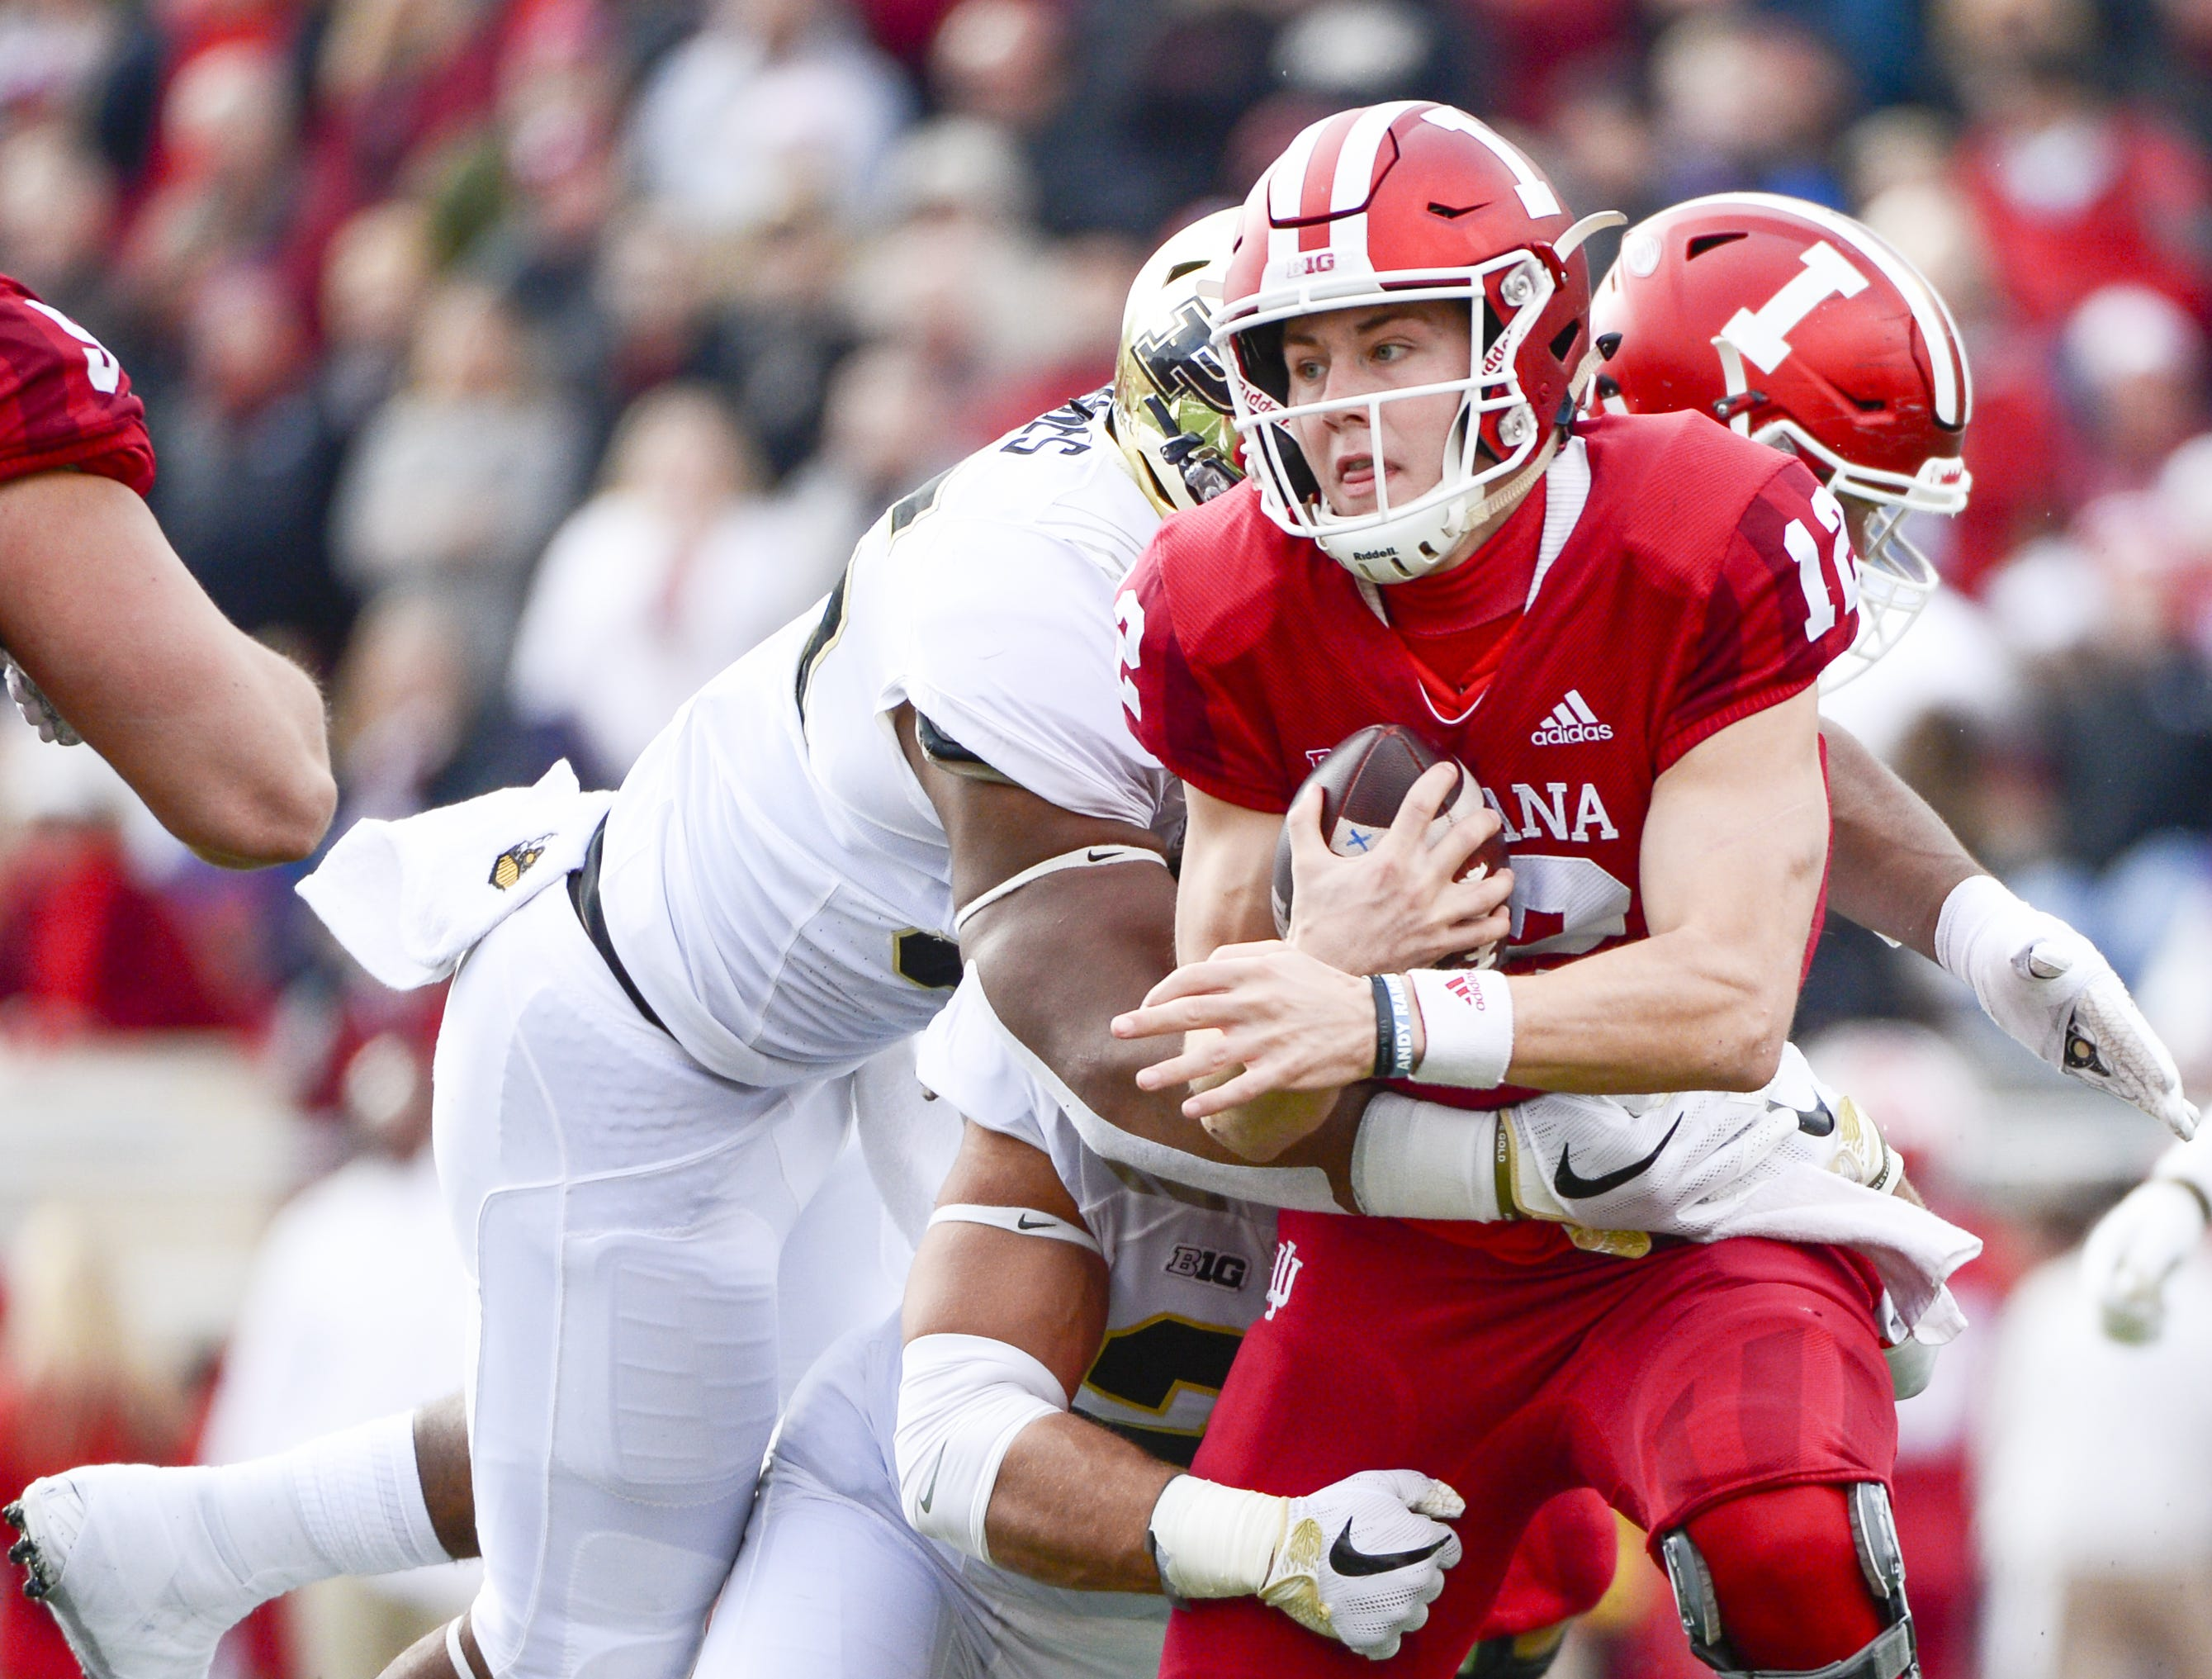 Indiana Hoosiers quarterback Peyton Ramsey (12) is tackled during the game against Purdue at Memorial Stadium in Bloomington Ind., on Saturday, Nov. 24, 2018.